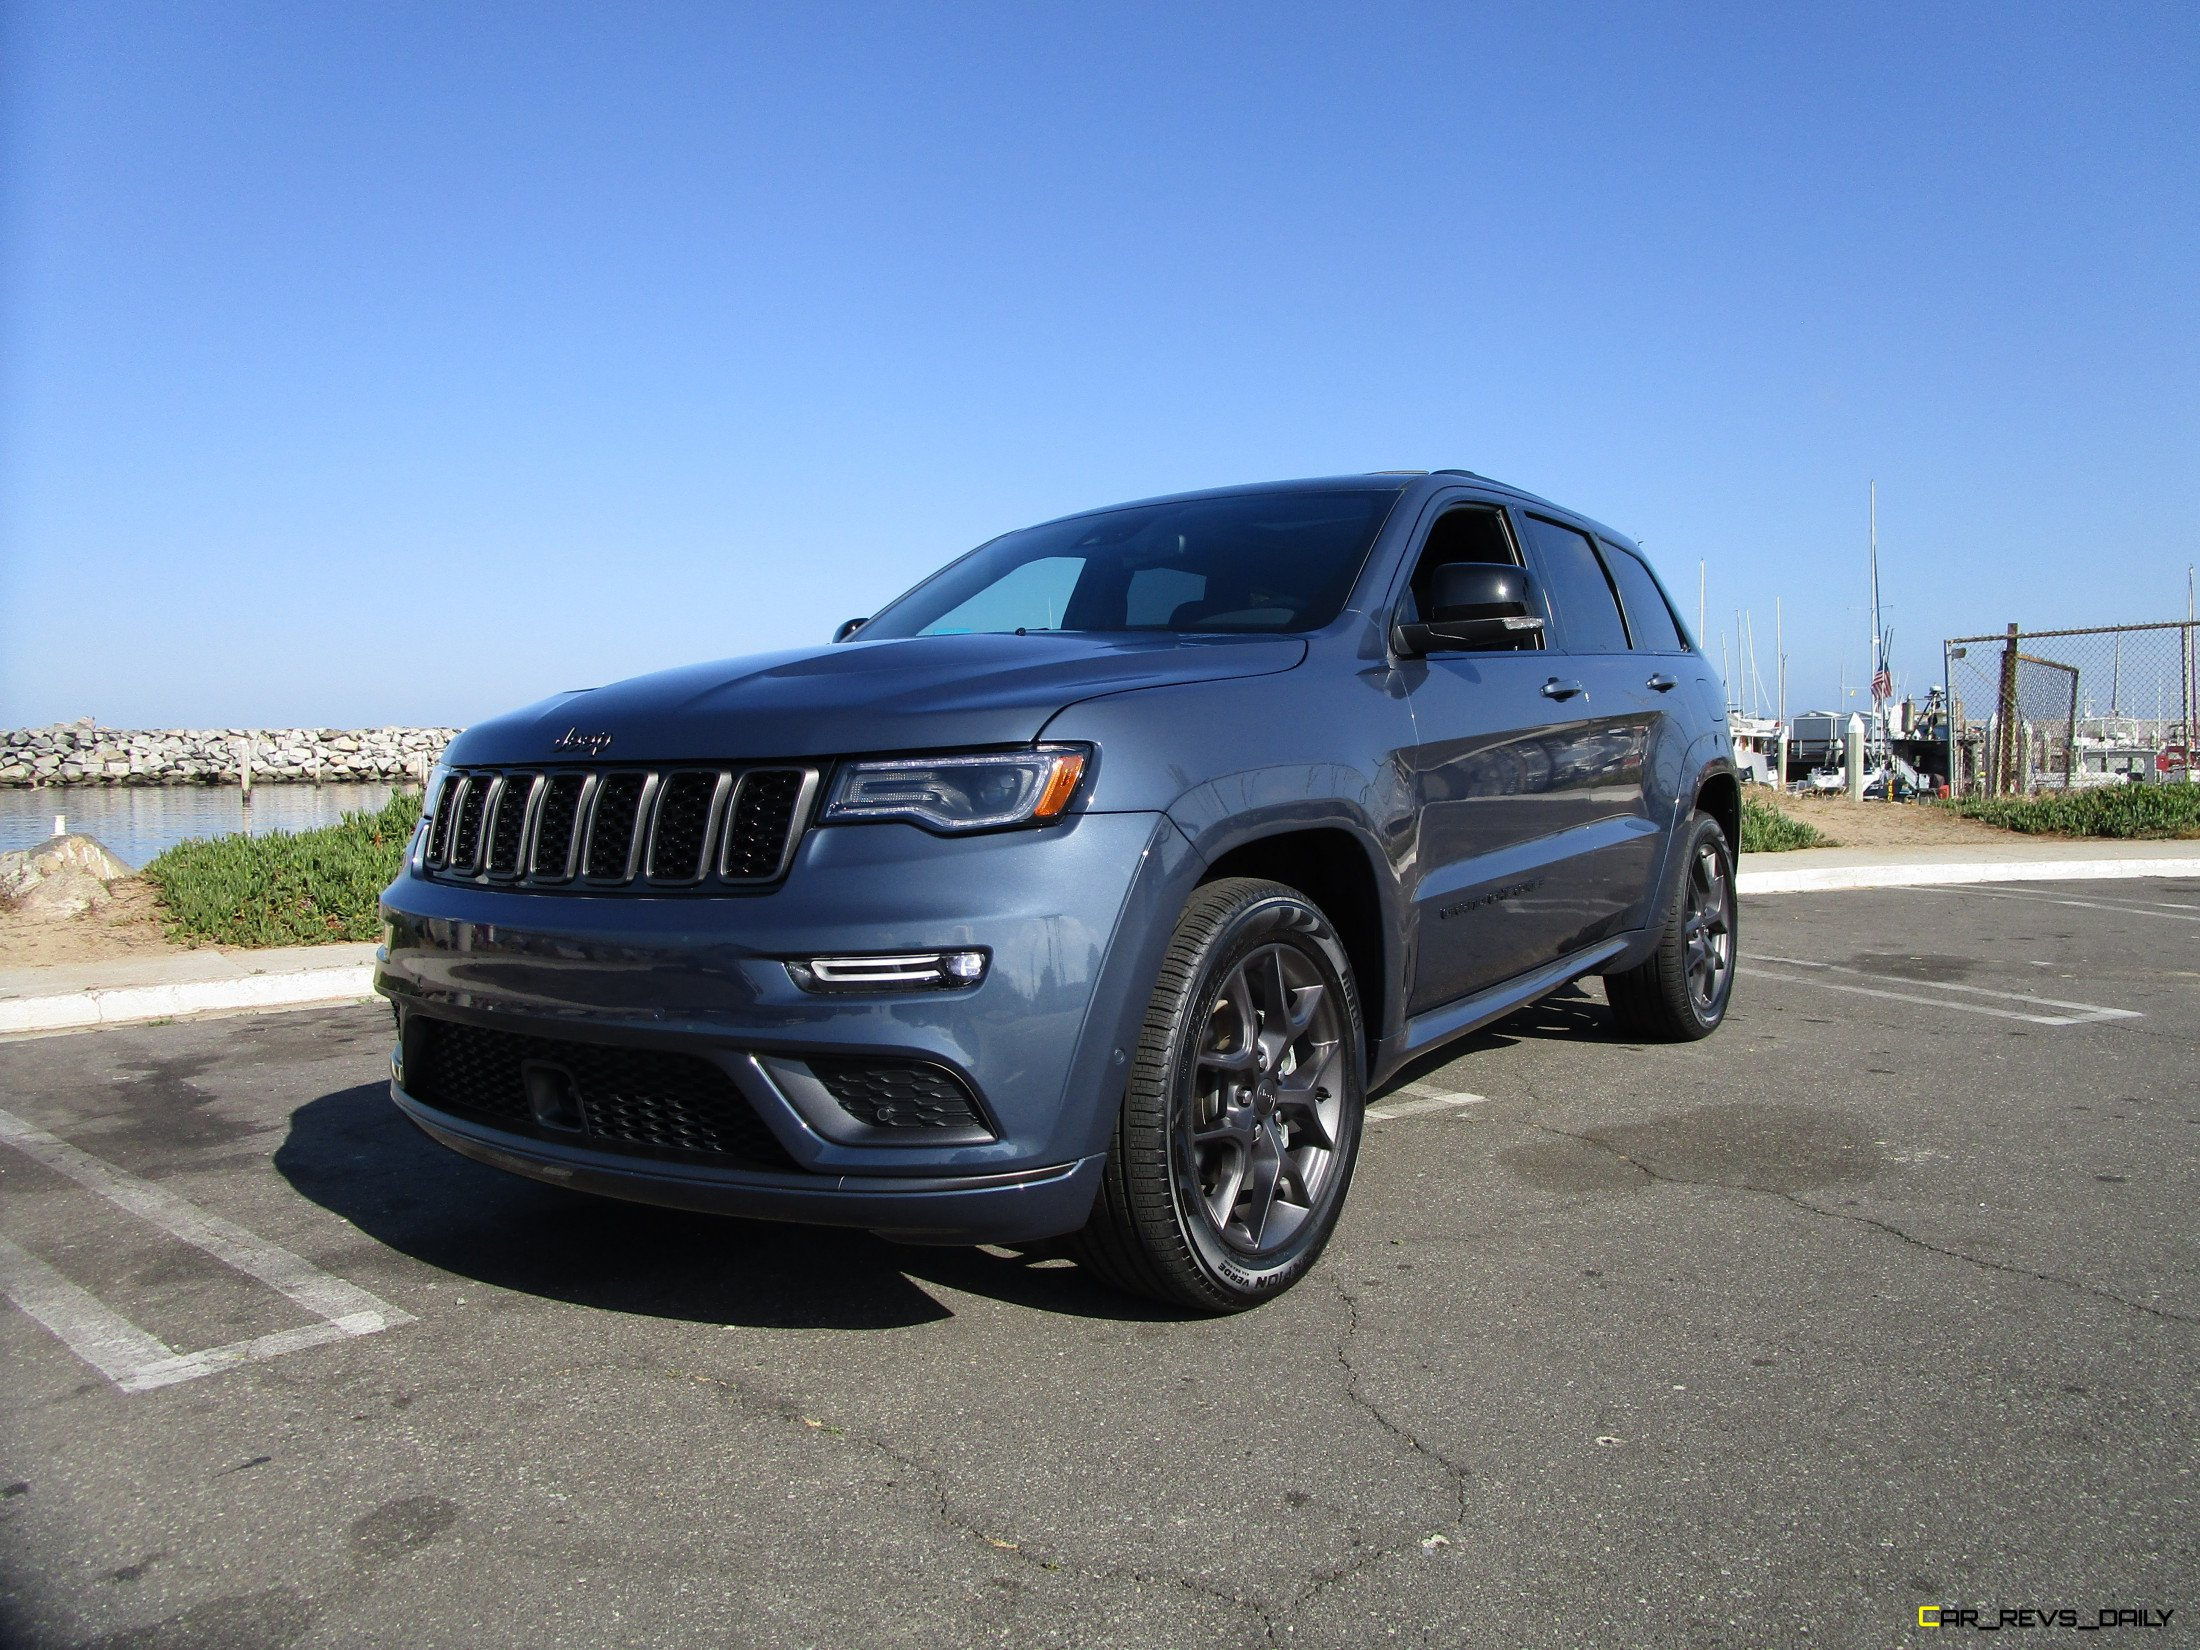 2020 Jeep Grand Cherokee Limited X 4x4 By Ben Lewis Road Test Reviews Car Revs Daily Com